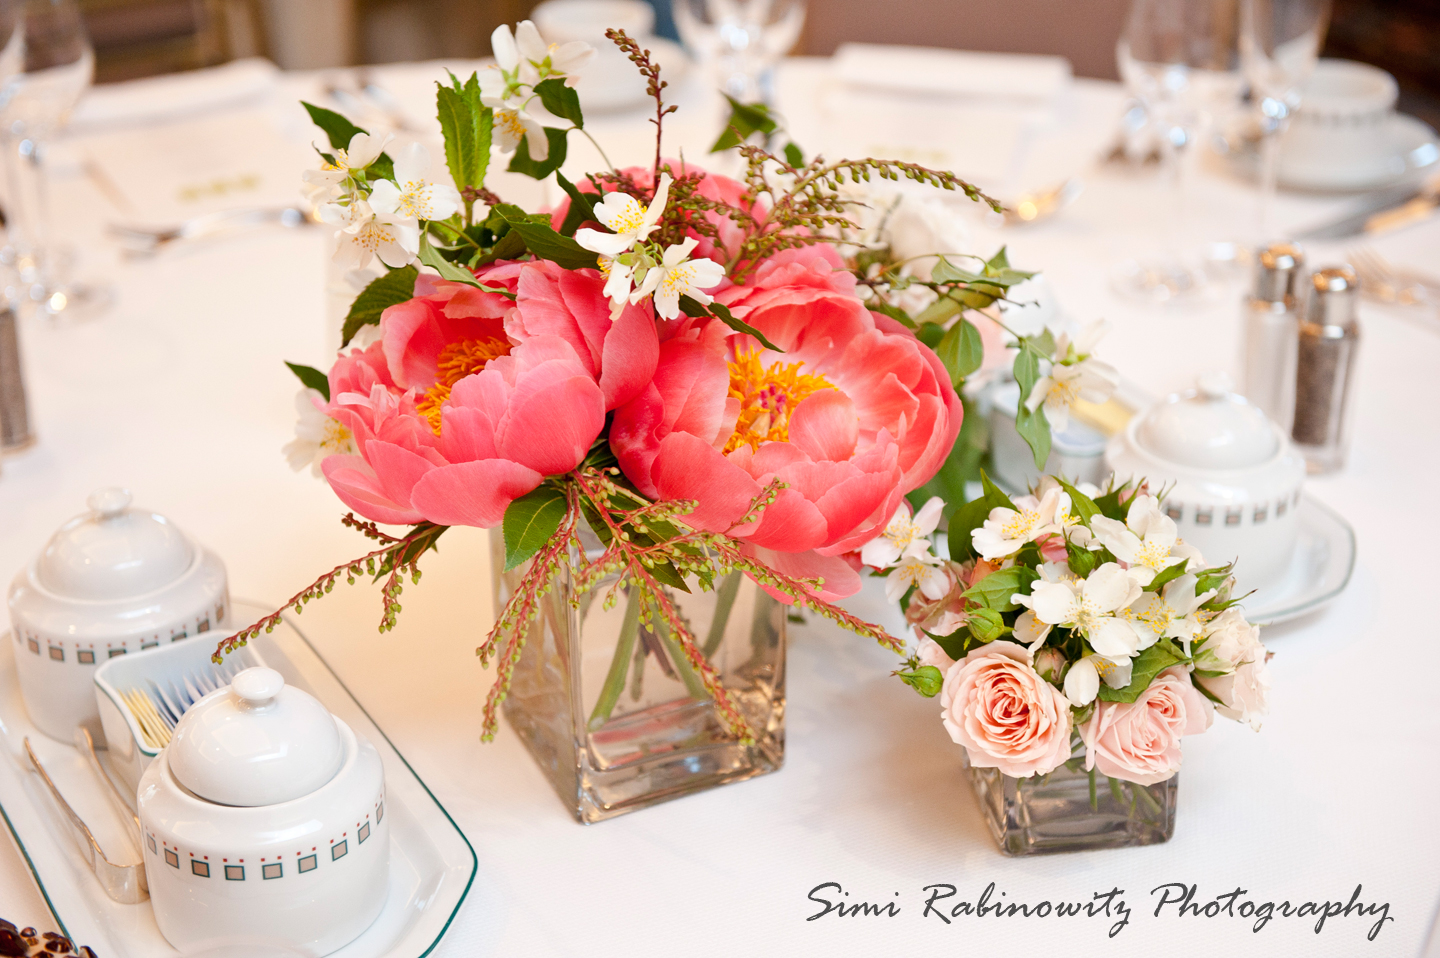 Petalena: Creative Designs For Weddings And Special Events